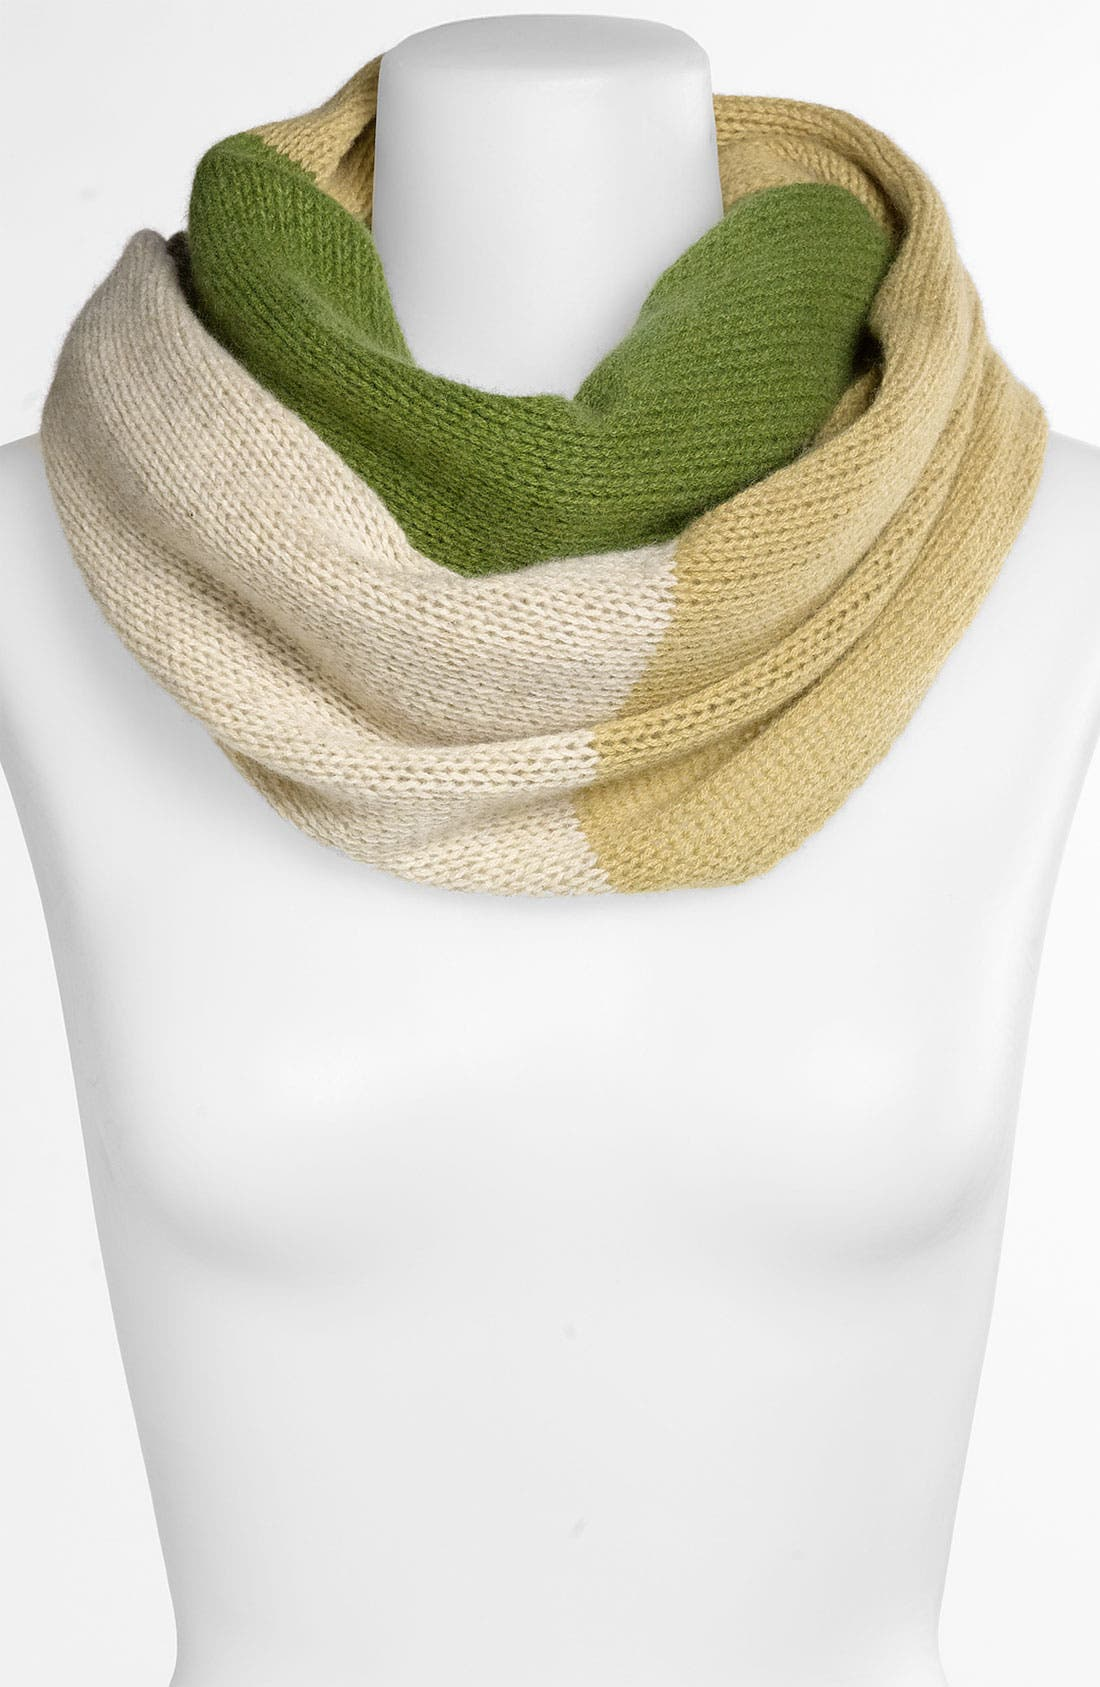 Alternate Image 1 Selected - Nordstrom Colorblock Cashmere Infinity Scarf